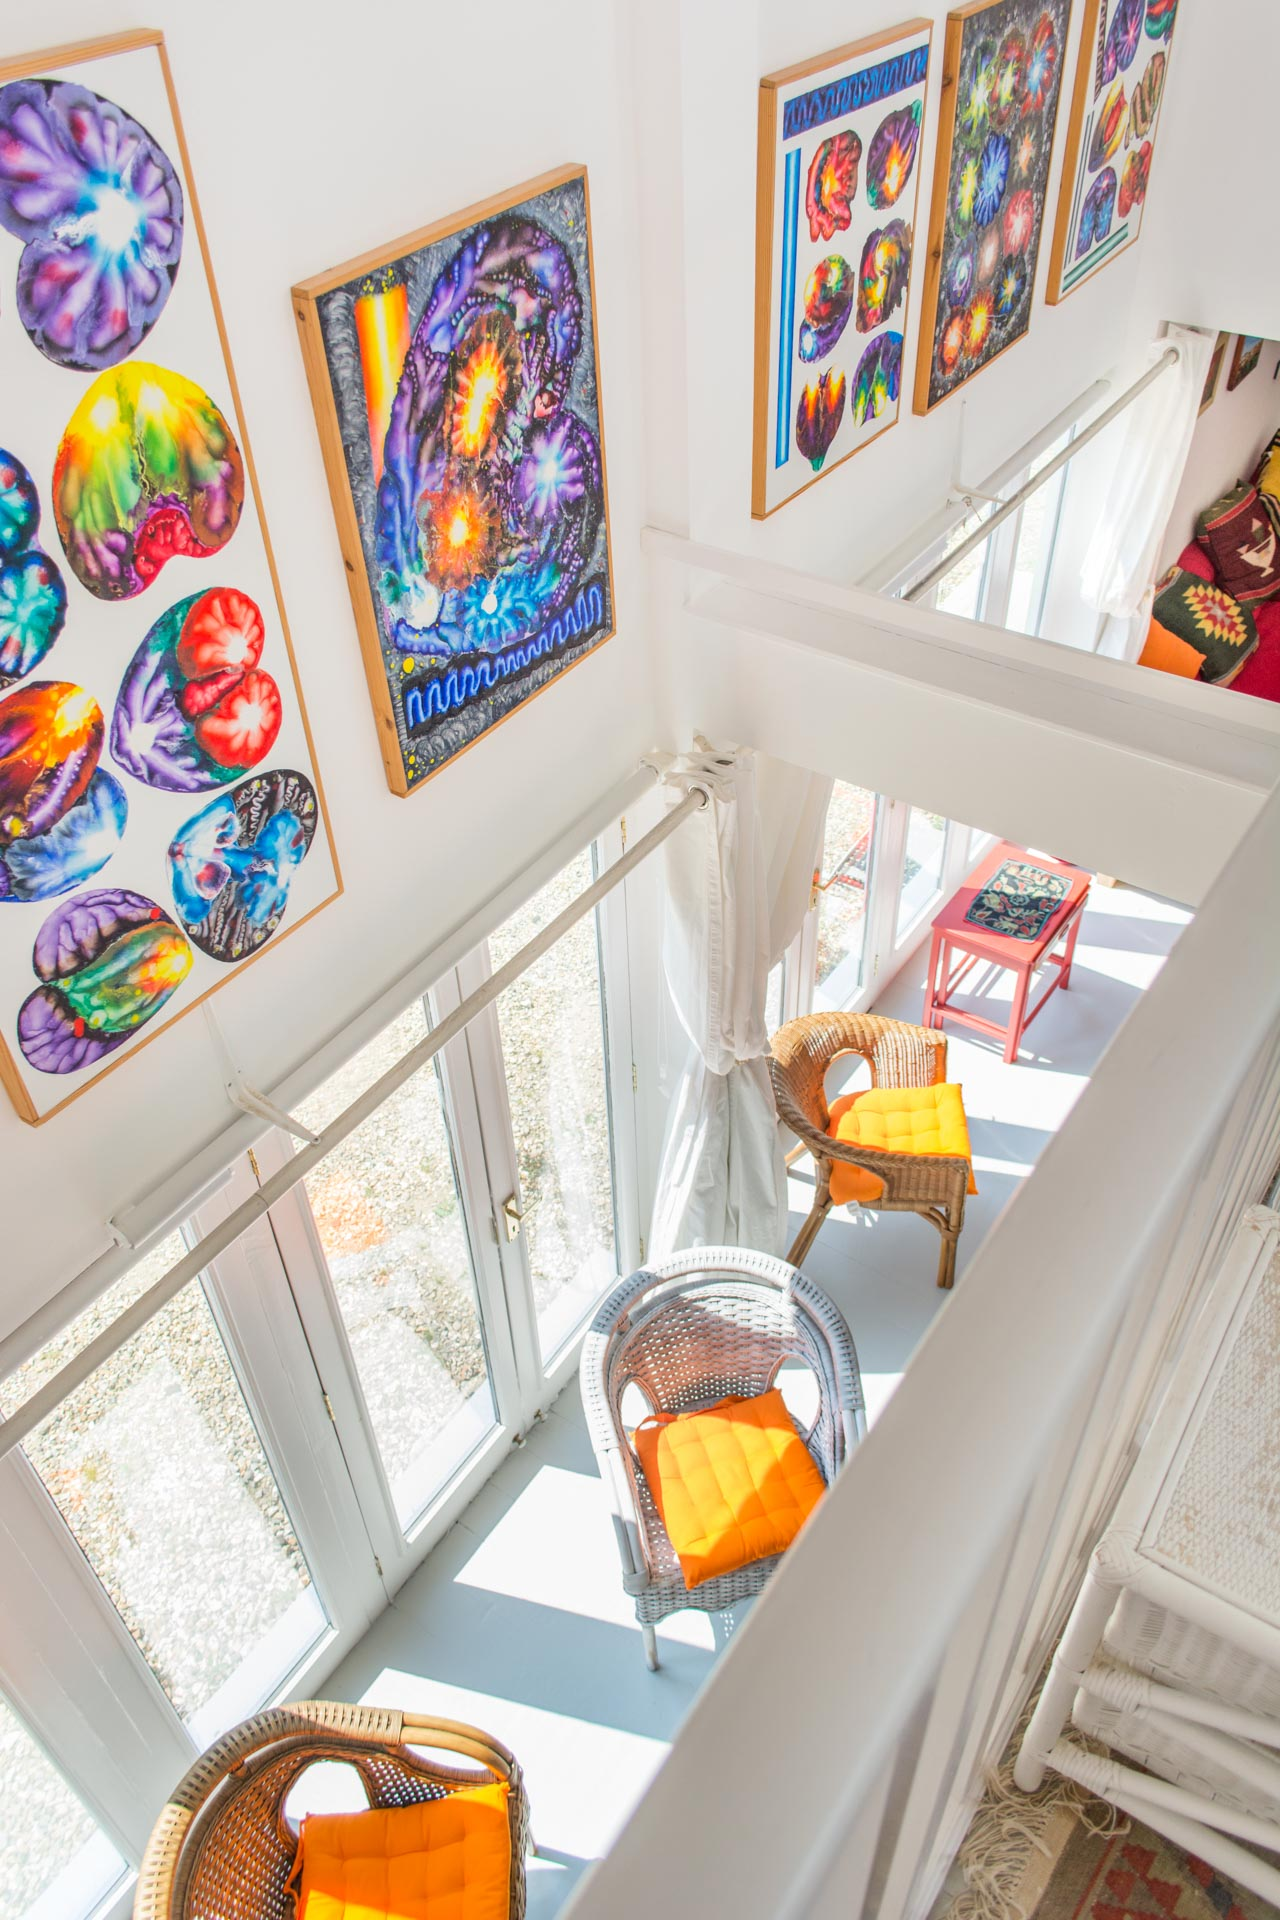 Photo taken from the mezzanine level showing colourful artwork on the walls and chairs on the ground floor.